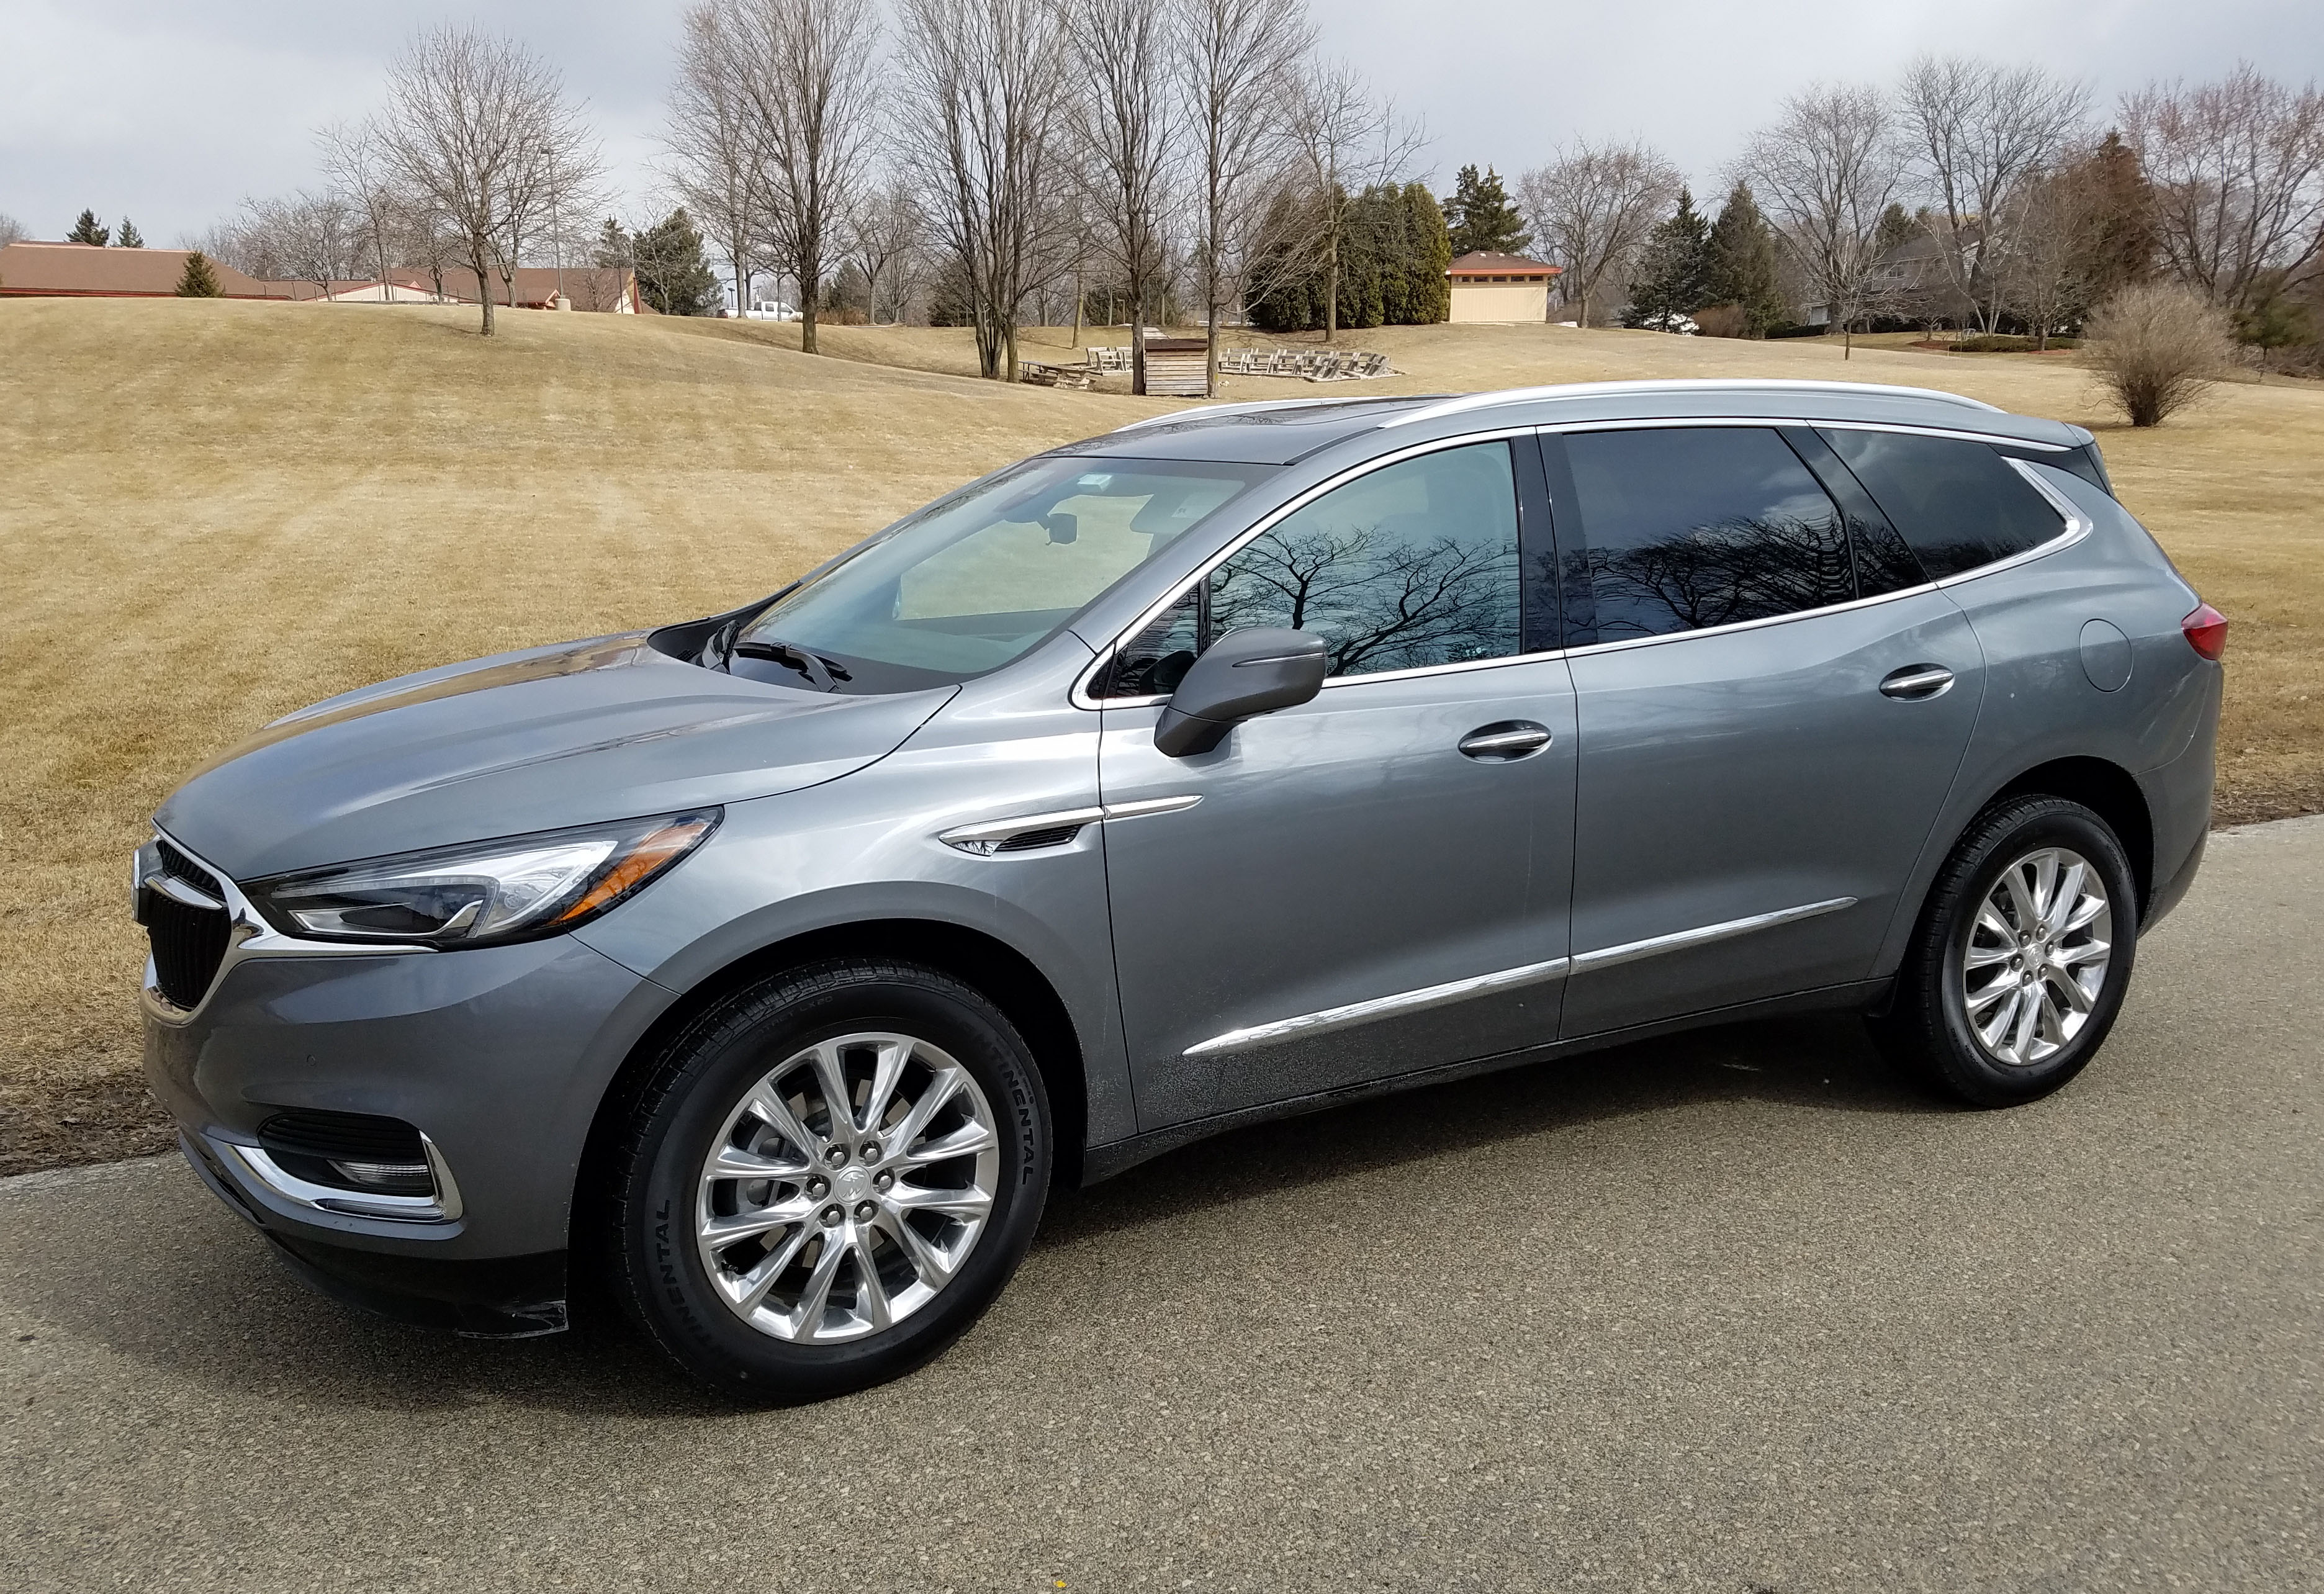 2018 buick enclave premium awd savage on wheels. Black Bedroom Furniture Sets. Home Design Ideas